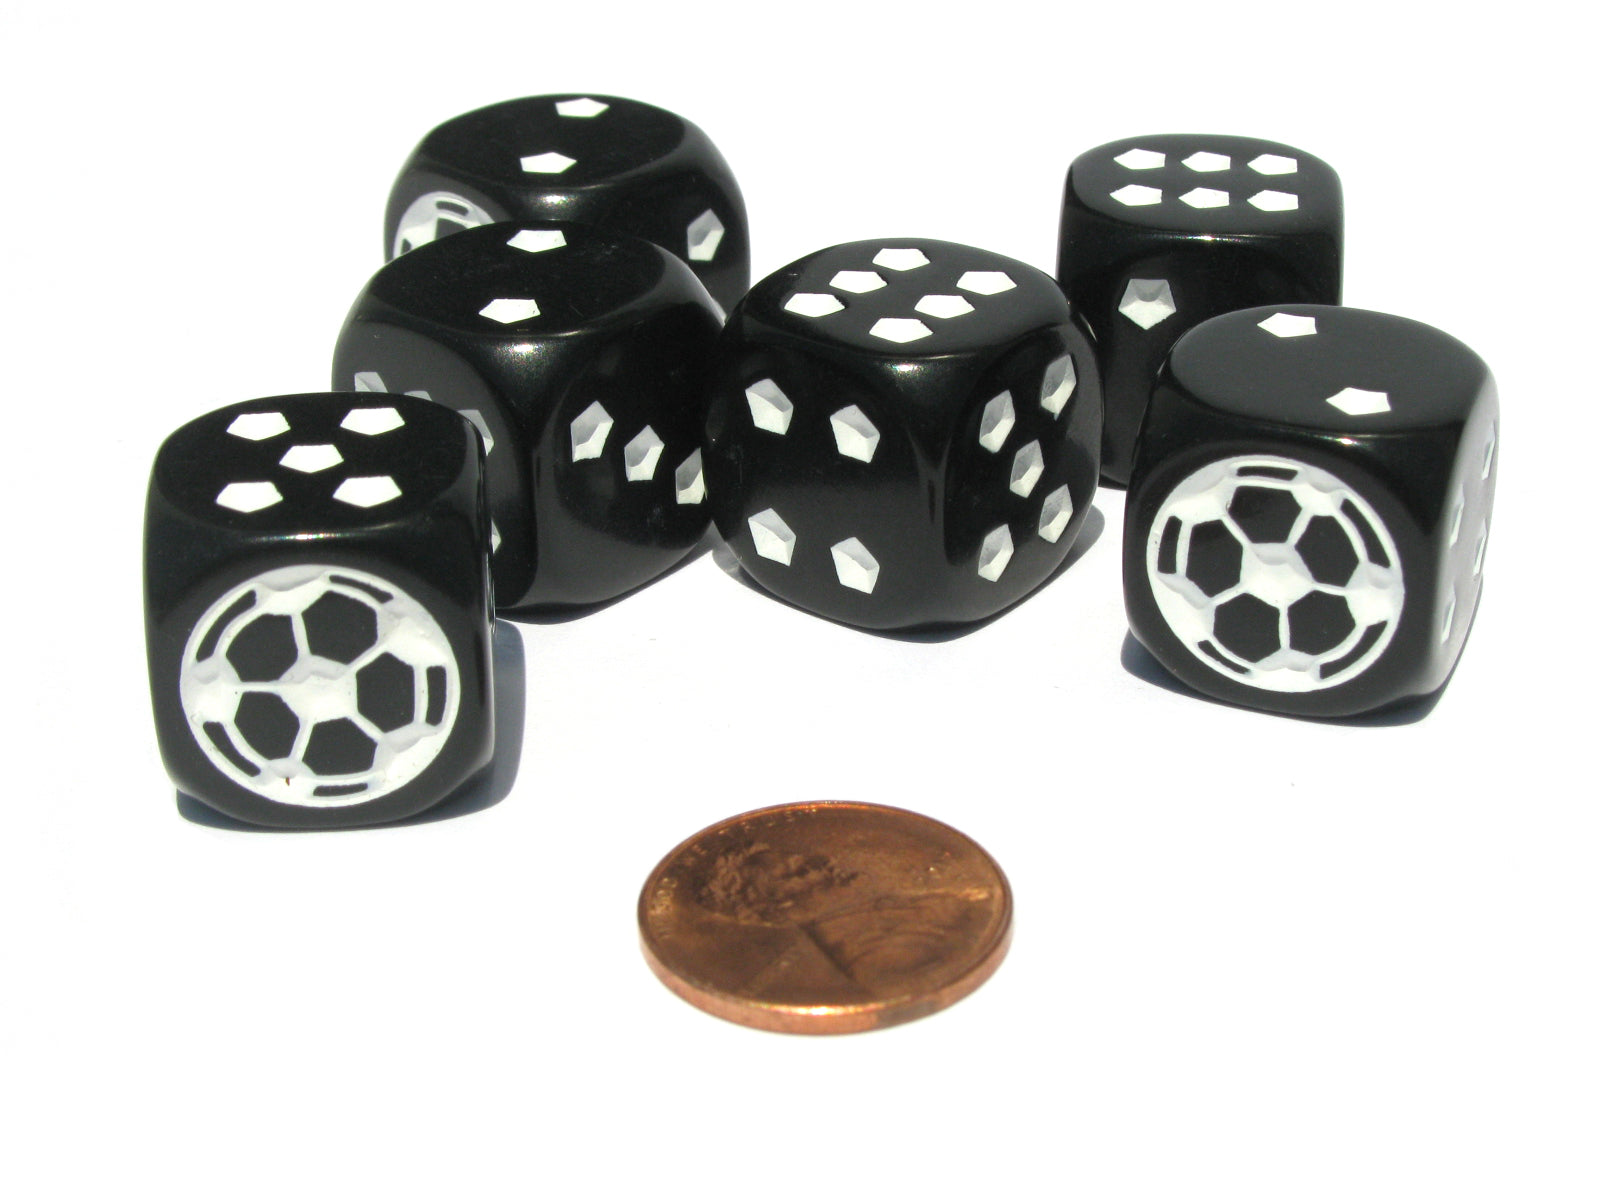 Set of 6 Soccer 18mm D6 Rounded Edges Sports Dice - Black with White Pips